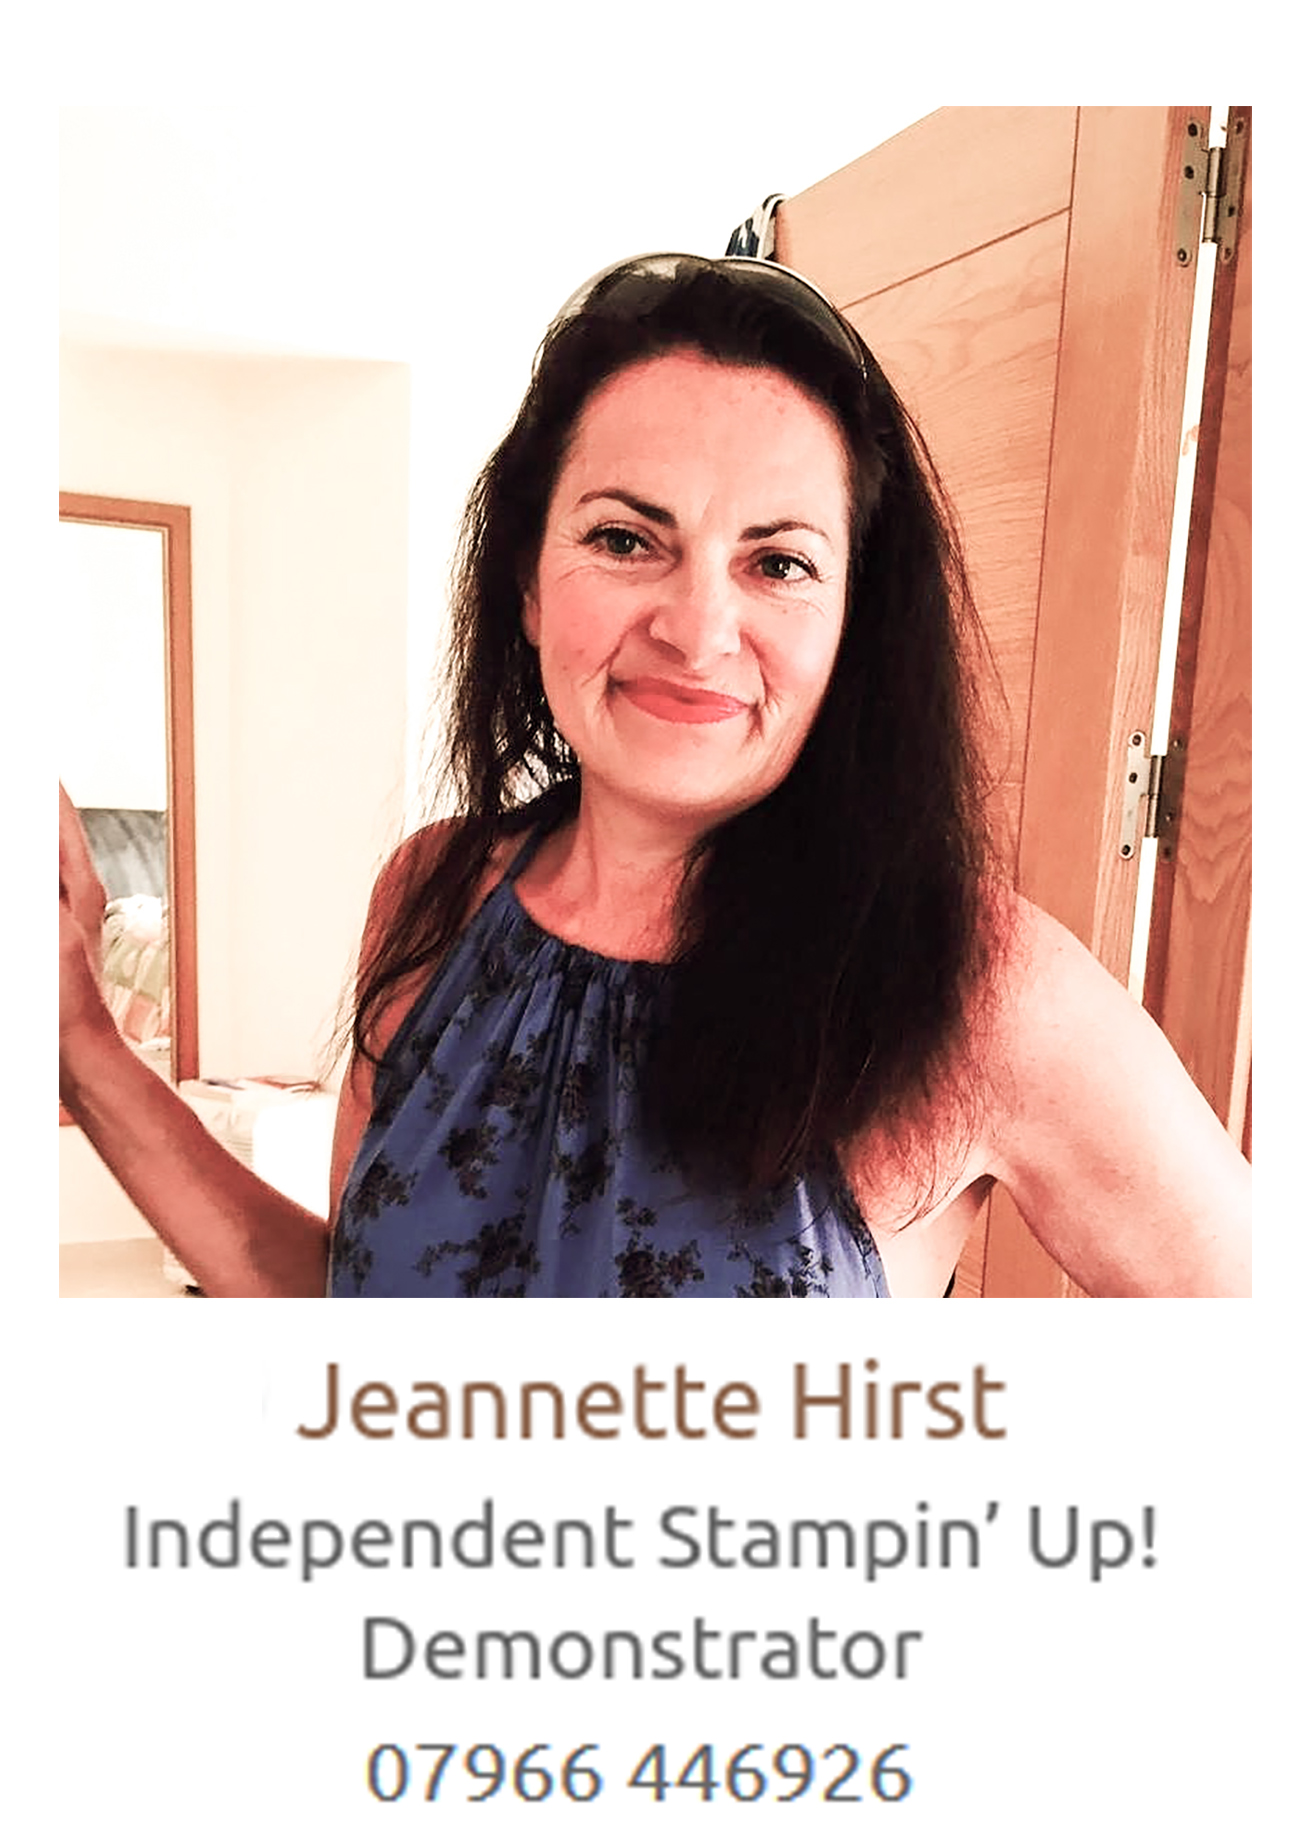 Jeannette Hirst - Independent Stampin' Up! Demonstrator